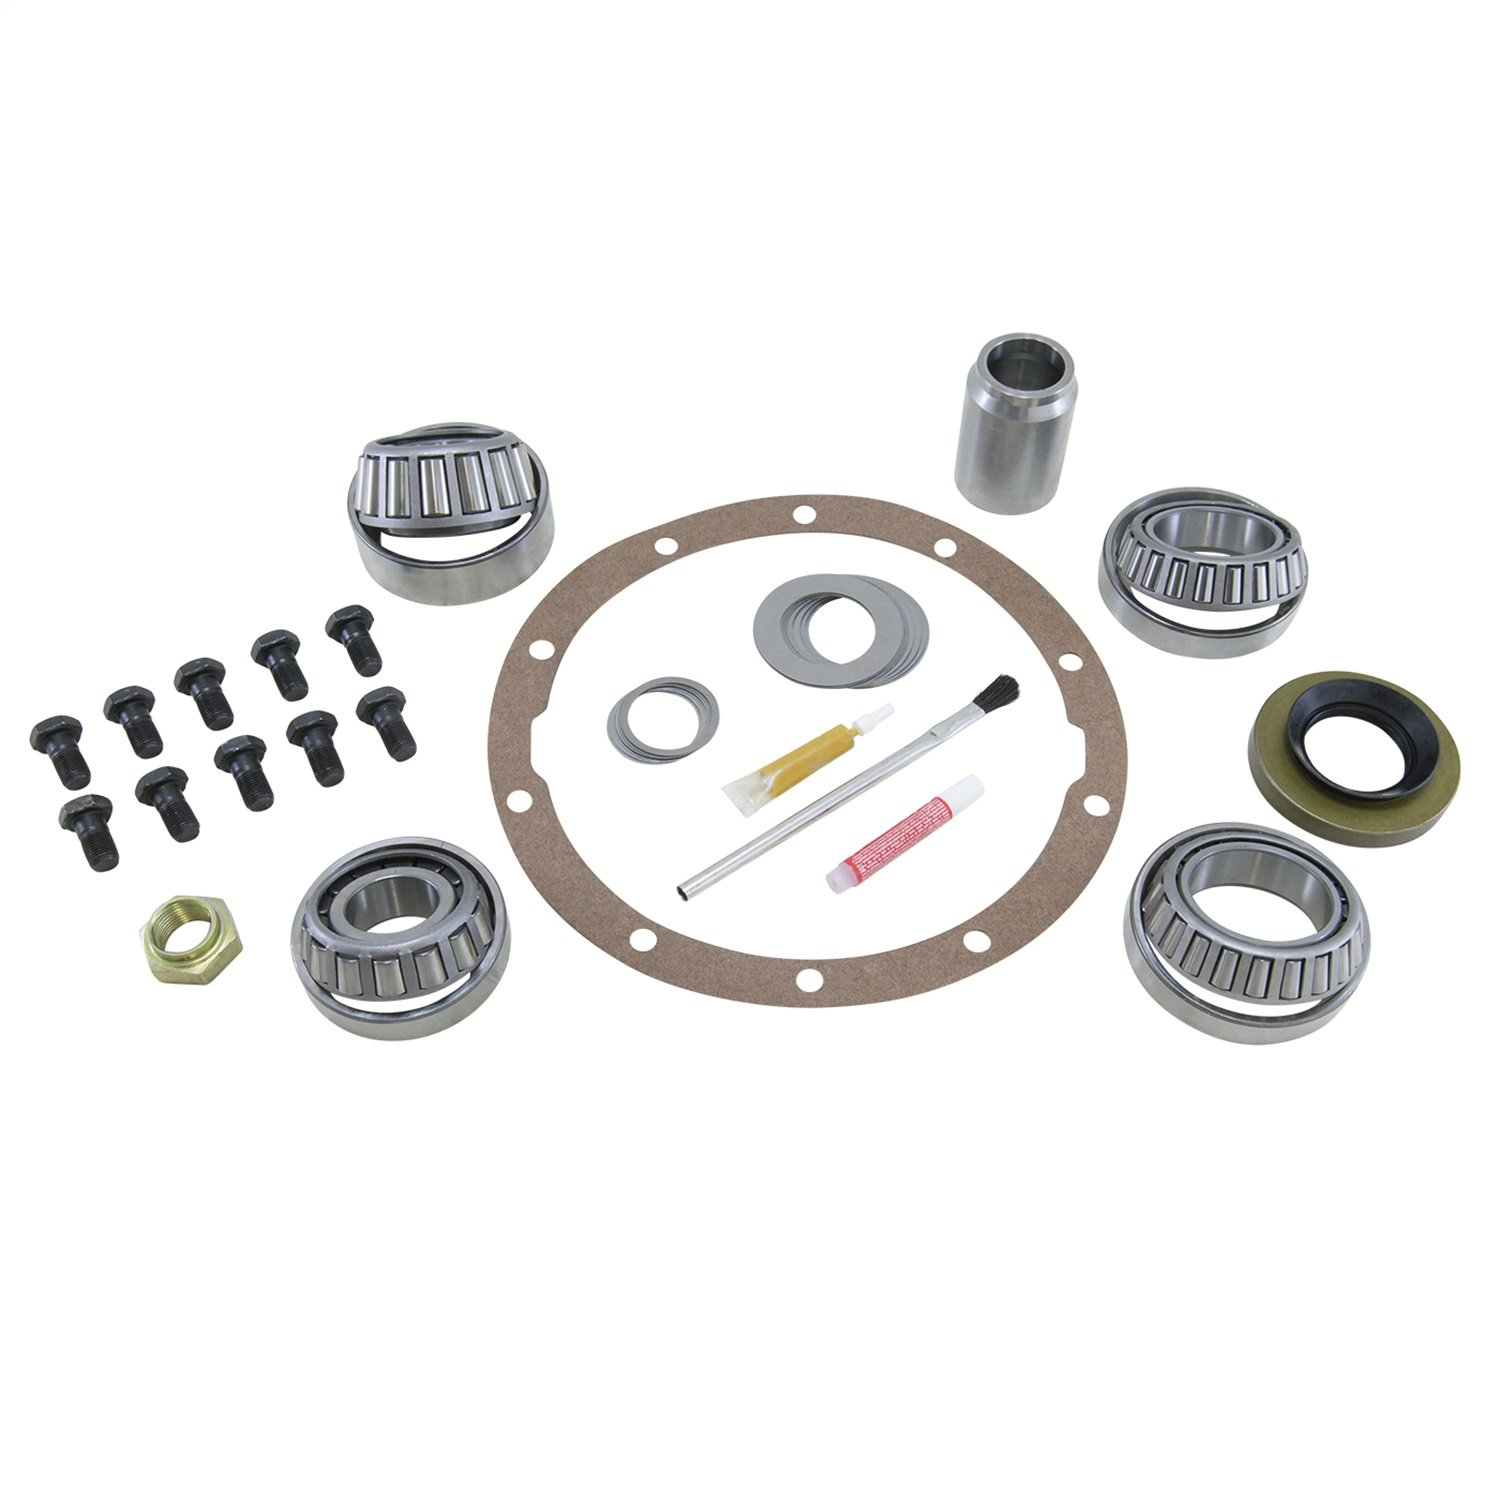 USA Standard Gear (ZK T8-A-SPC) Master Overhaul Kit for Toyota 8'' Differential by USA Standard Gear